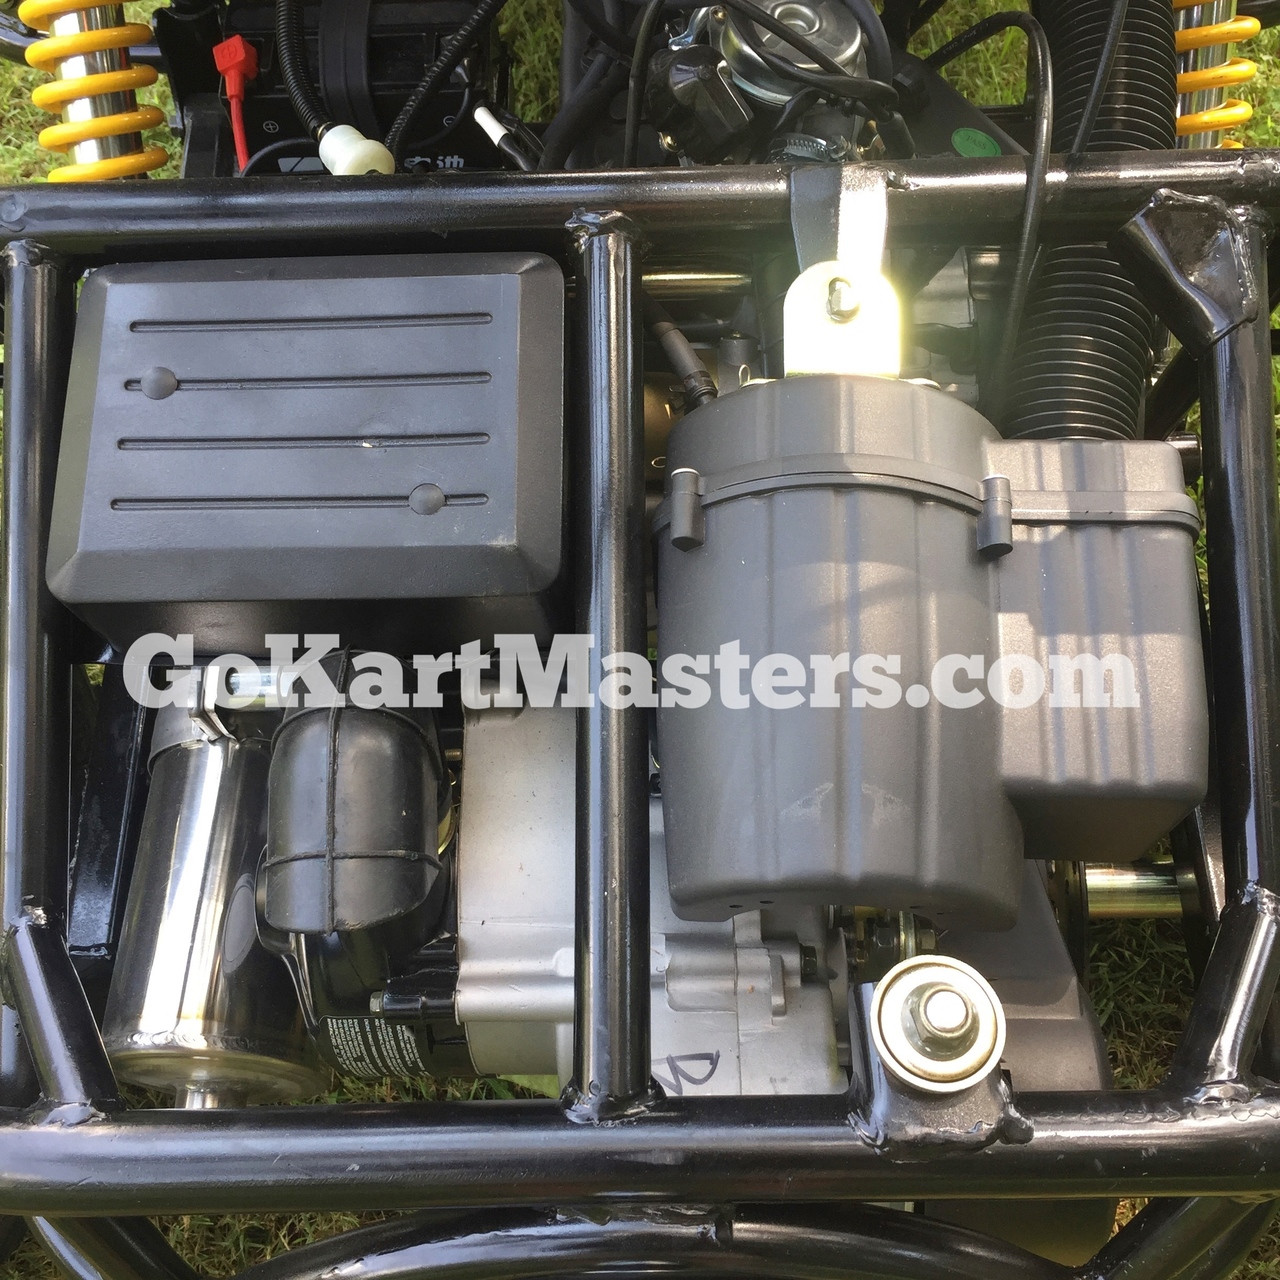 TrailMaster Blazer4 150 Go Kart - Air Cleaner & Electrical Boxes